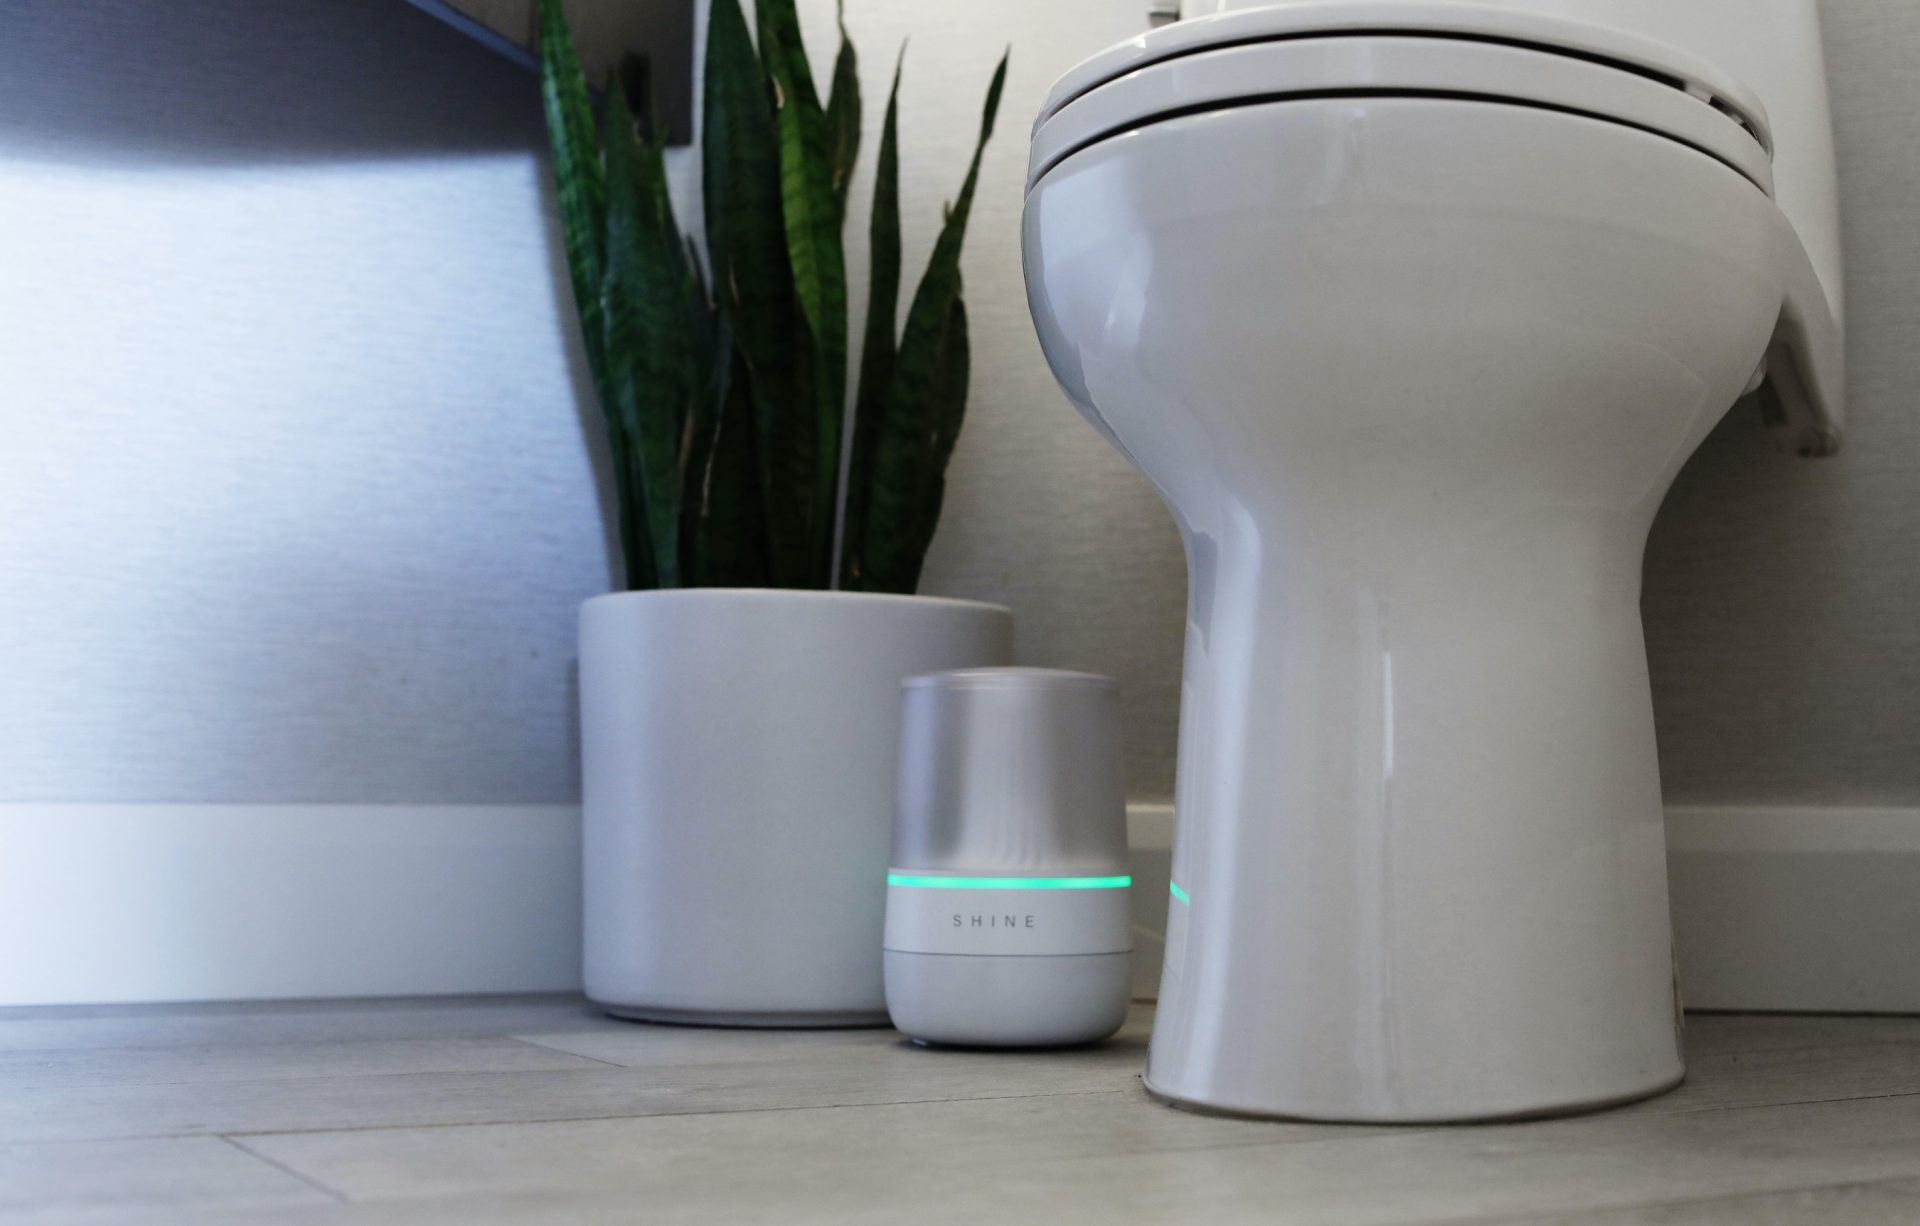 Shine Bathroom Automatic Toilet Cleaning System